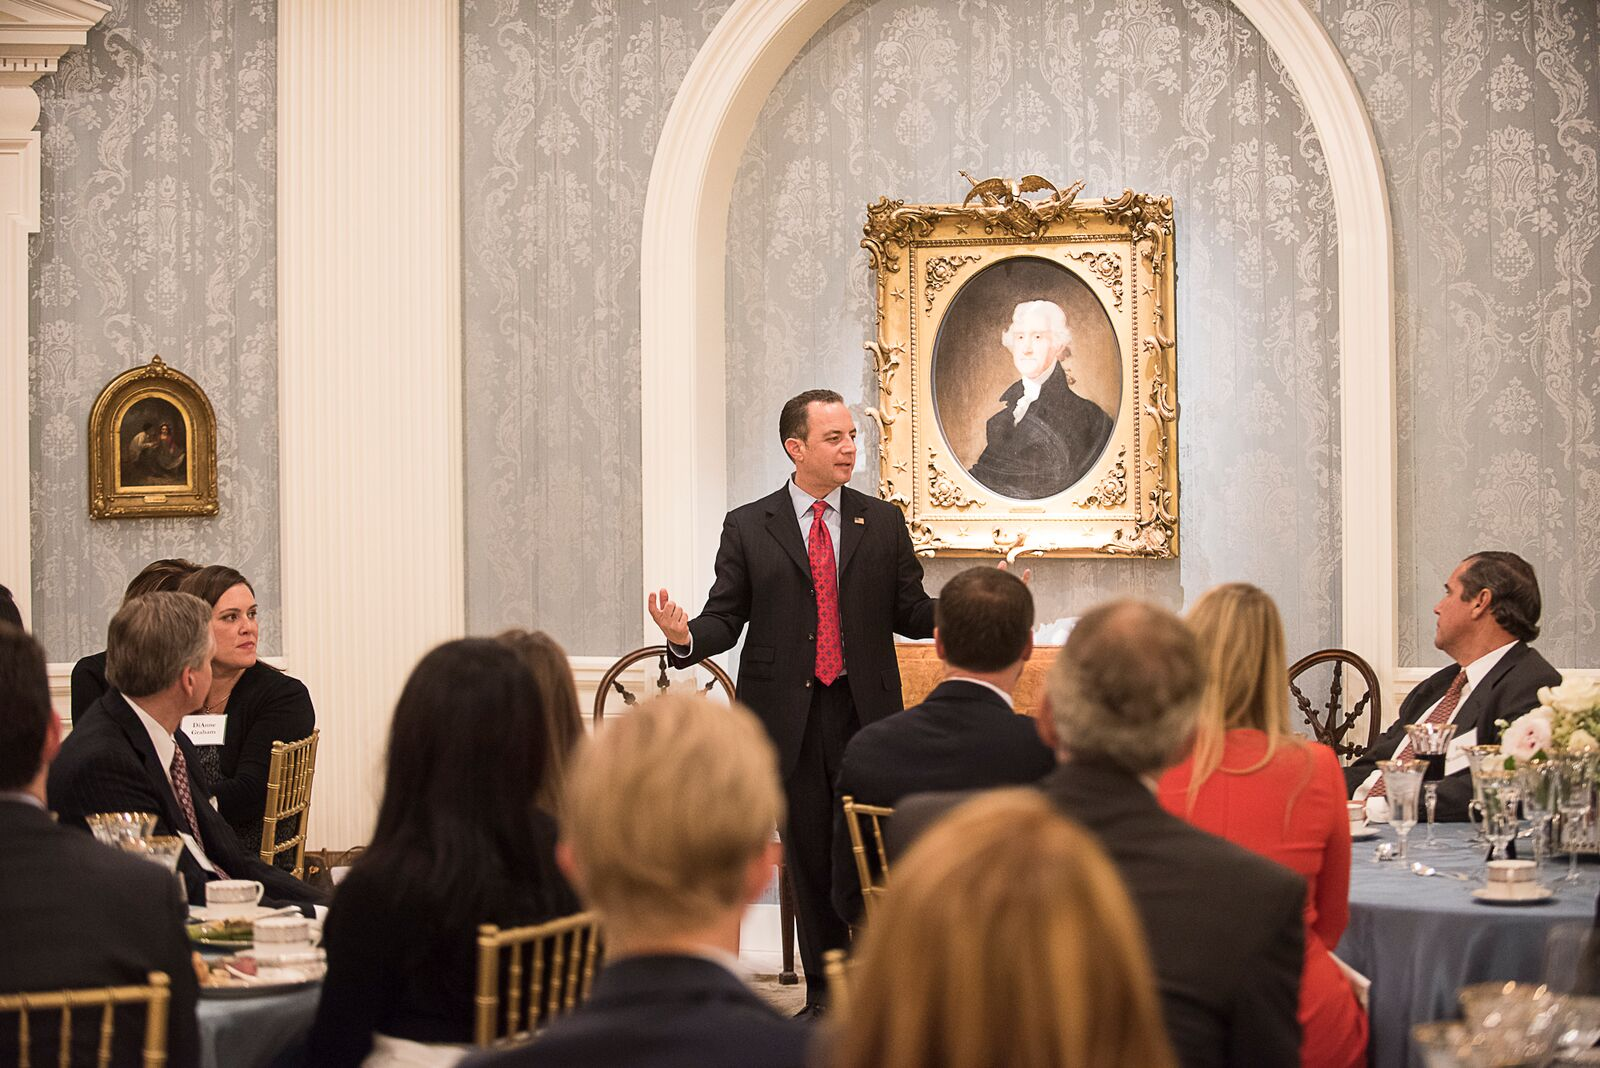 RNC Chairman Reince Priebus speaks to supporters at the RNC Presidential Trust Dinner at Old Parkland in November 2015.